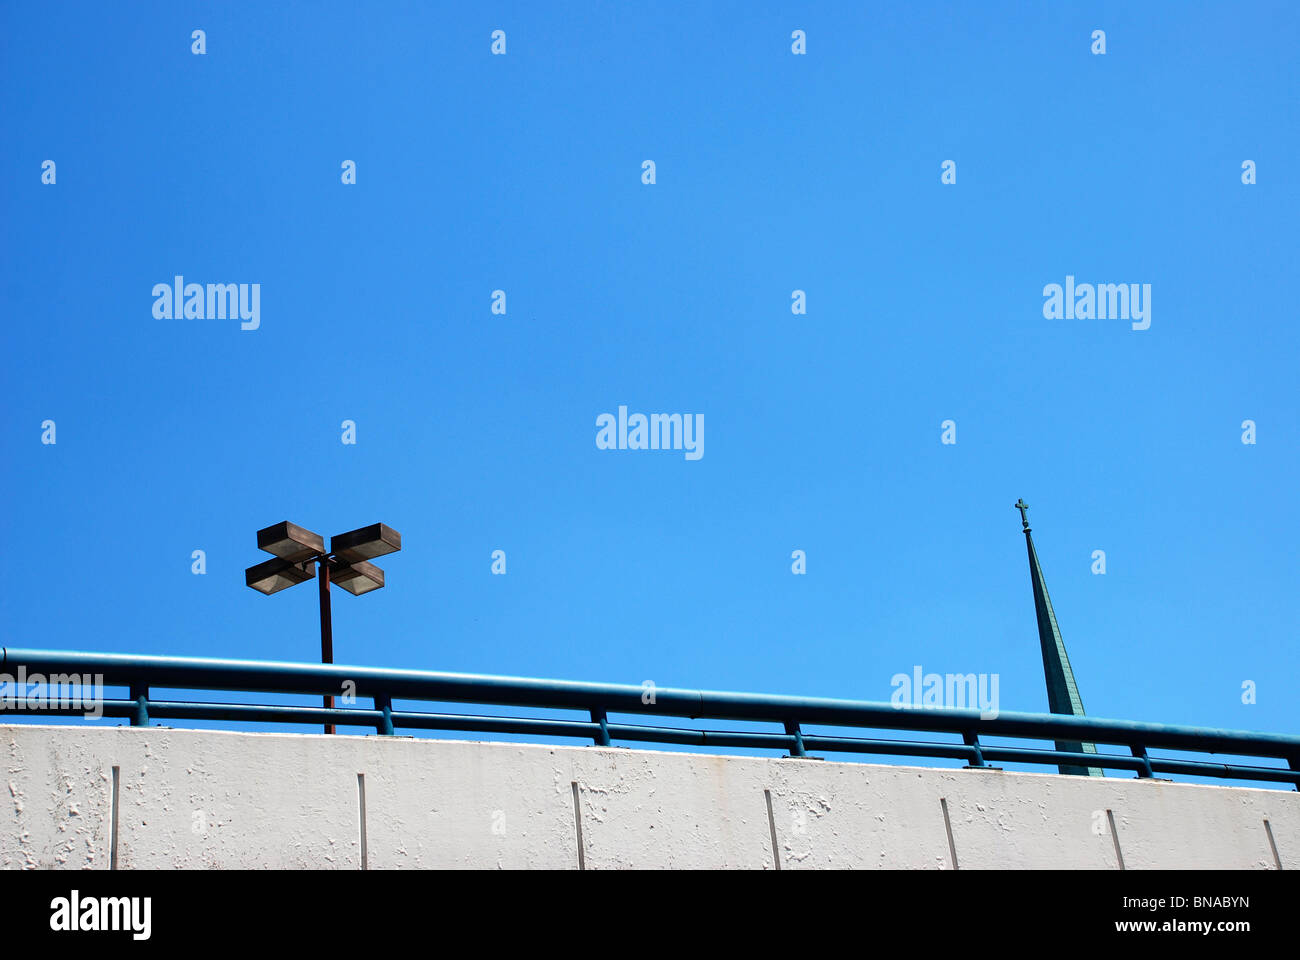 Parking garage with street lights on top and church steeple in background against clear blue sky. - Stock Image